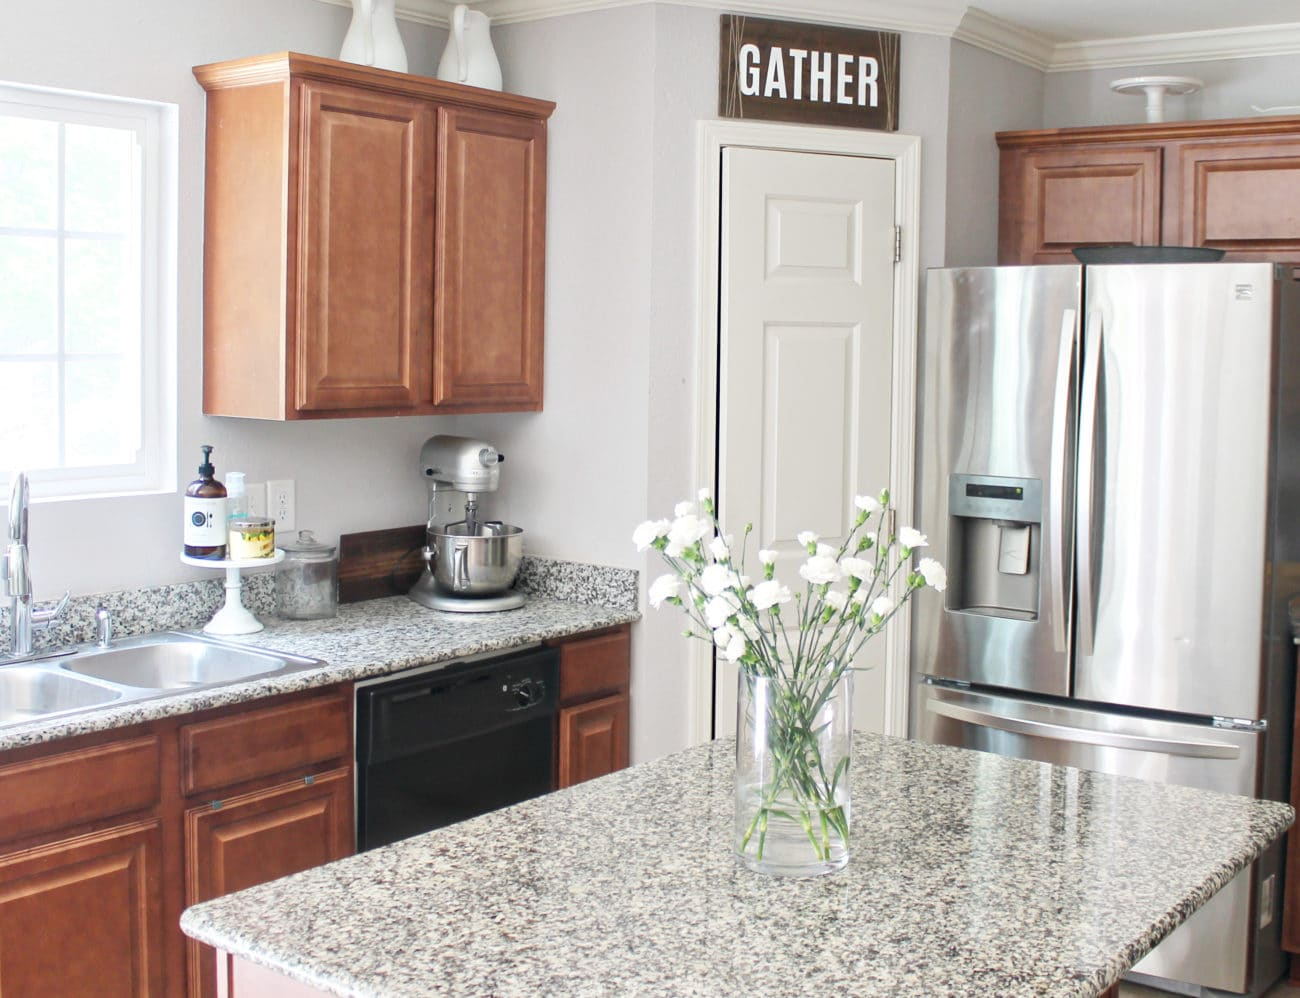 How to organize the kitchen junk drawer polished habitat for Kitchen junk drawer